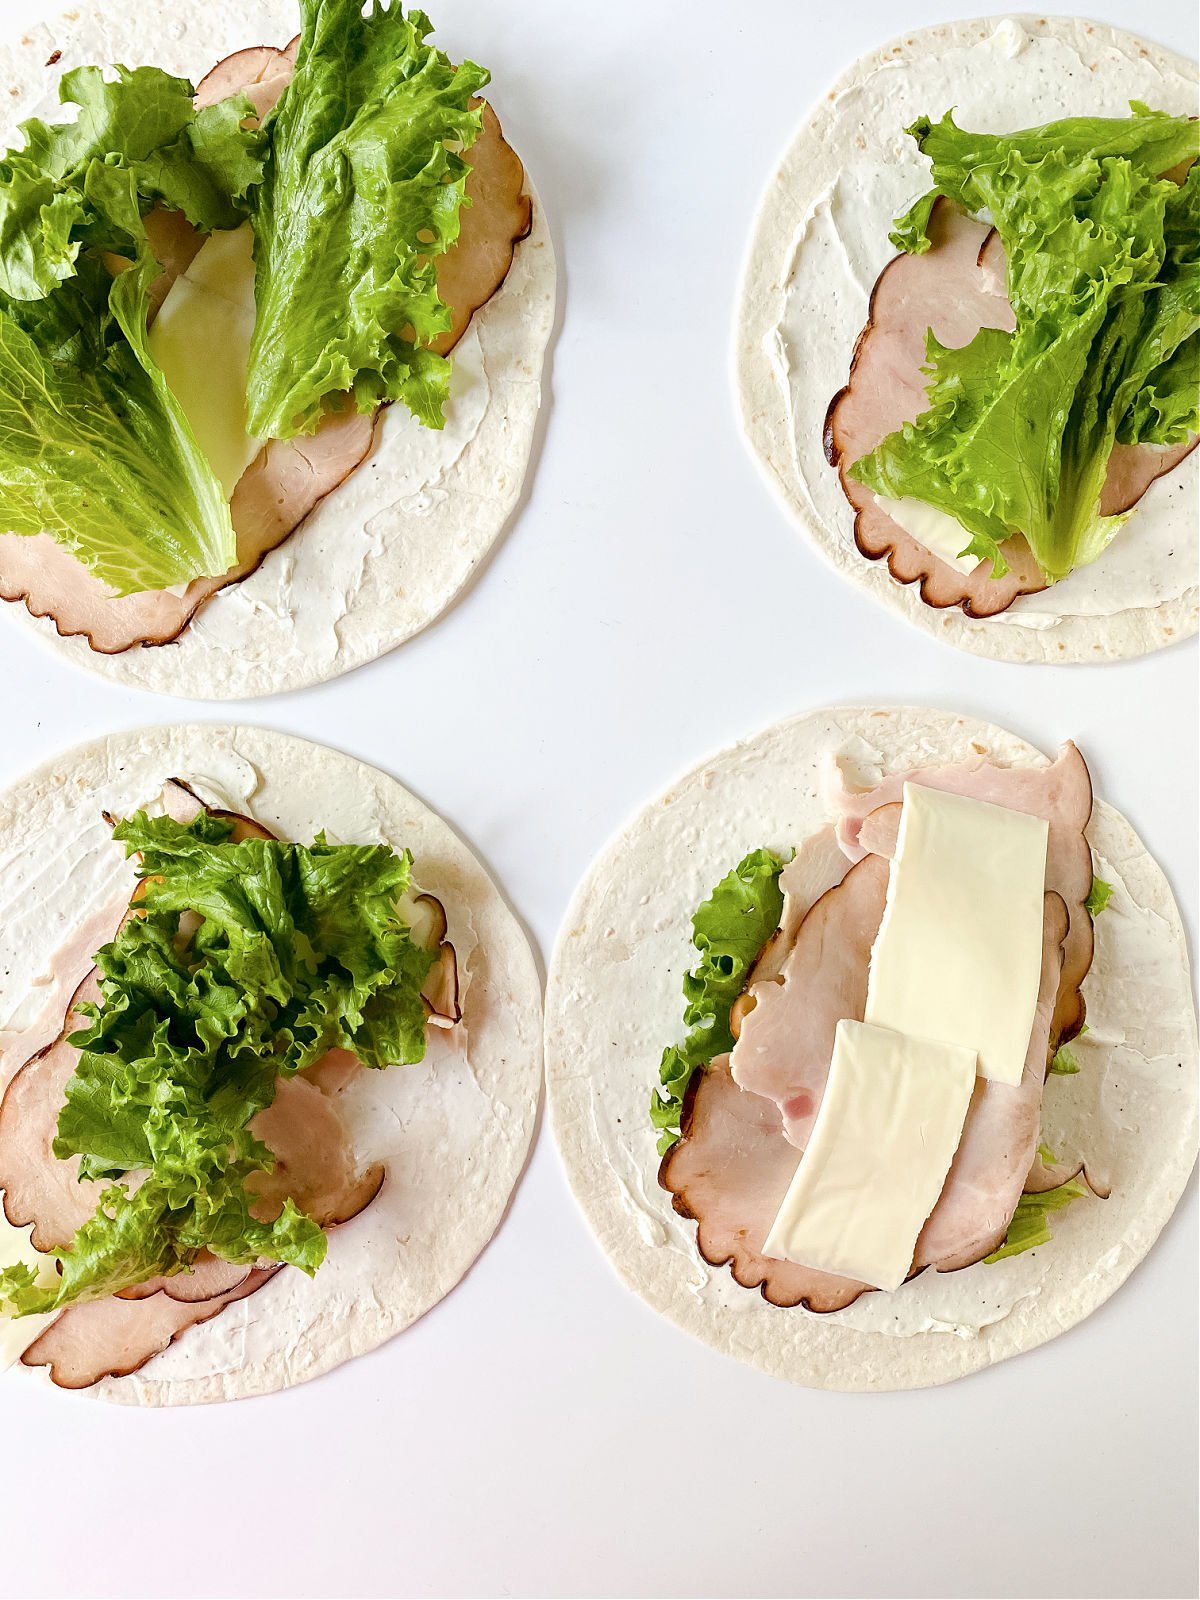 Four tortillas topped with seasoned cream cheese, turkey, lettuce, and cheese.